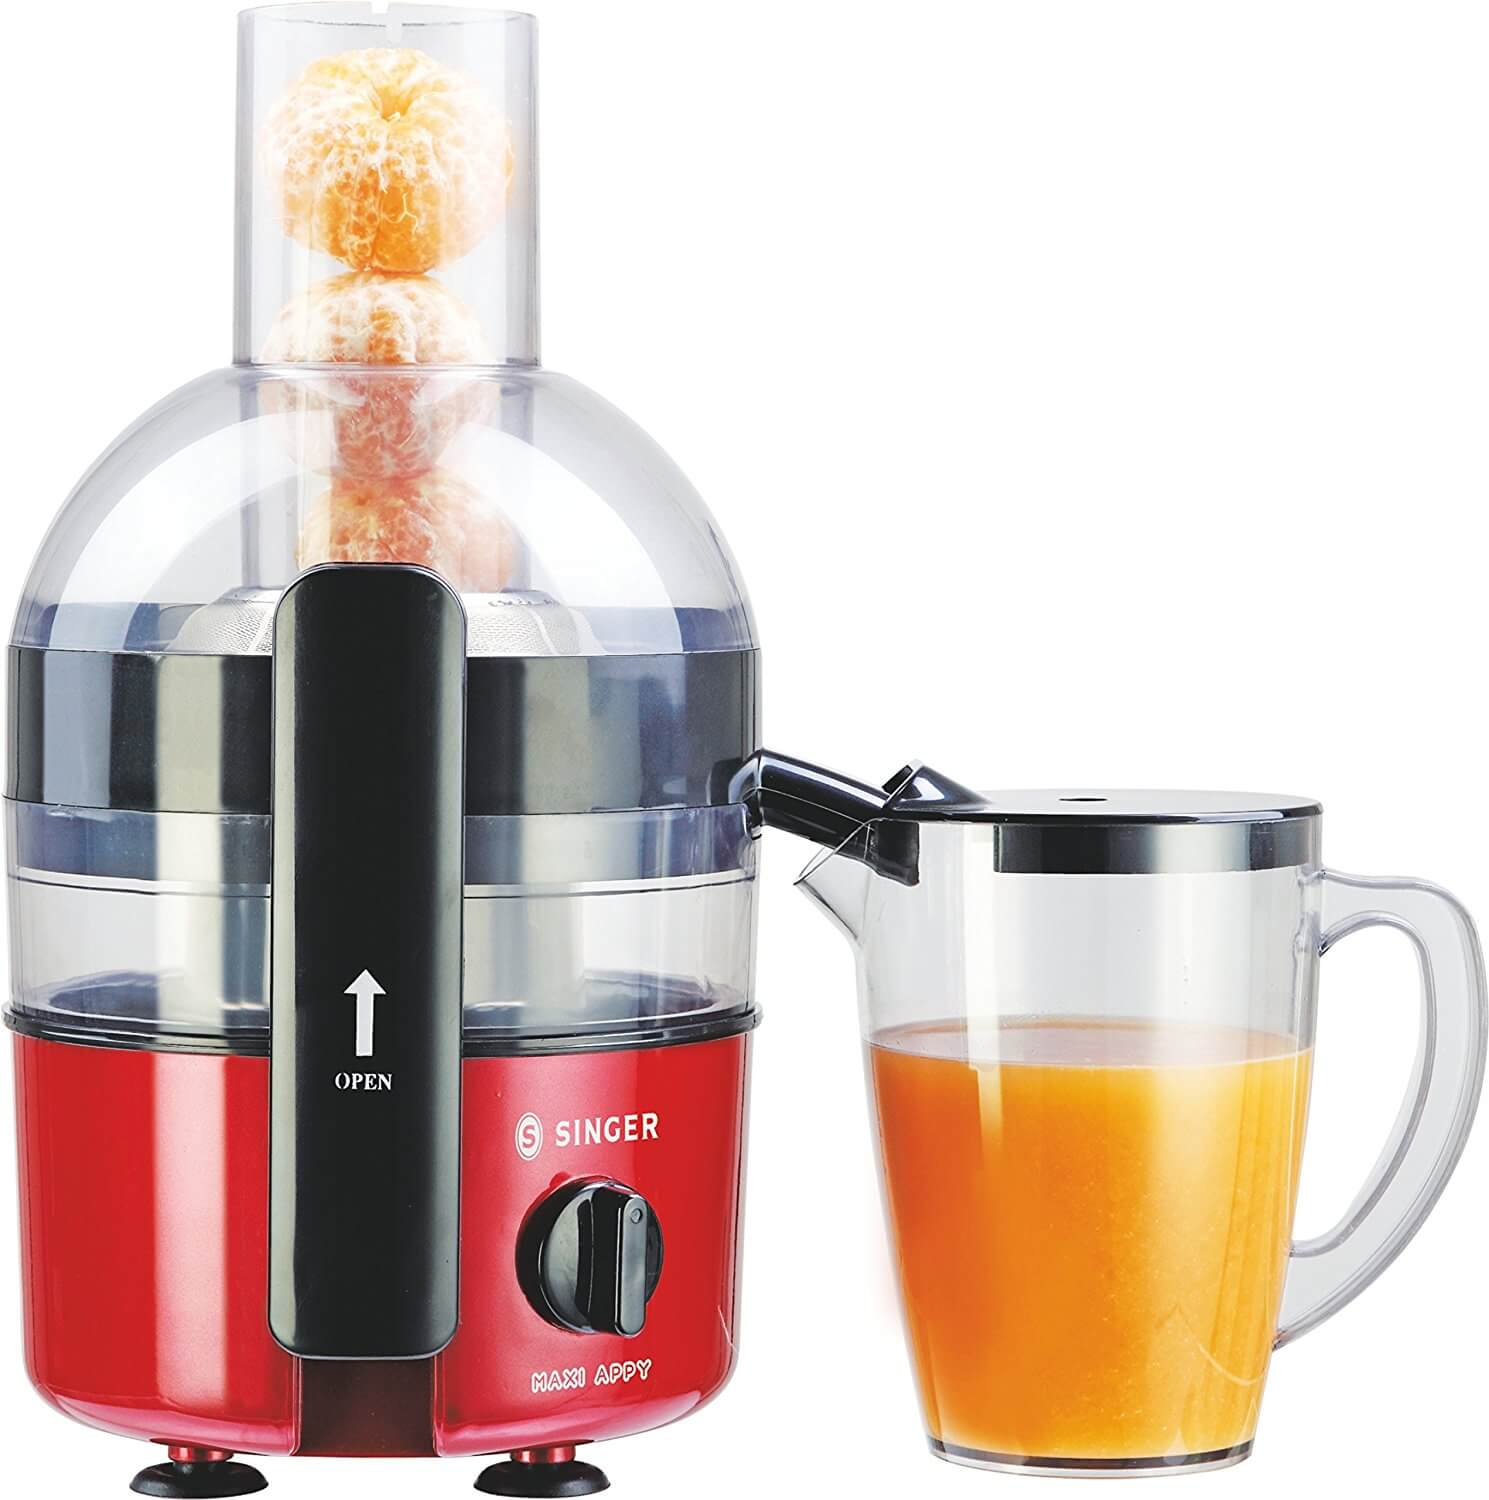 Singer Maxi Appy 700 Watts 2 Litre Juicer (Red/Black)